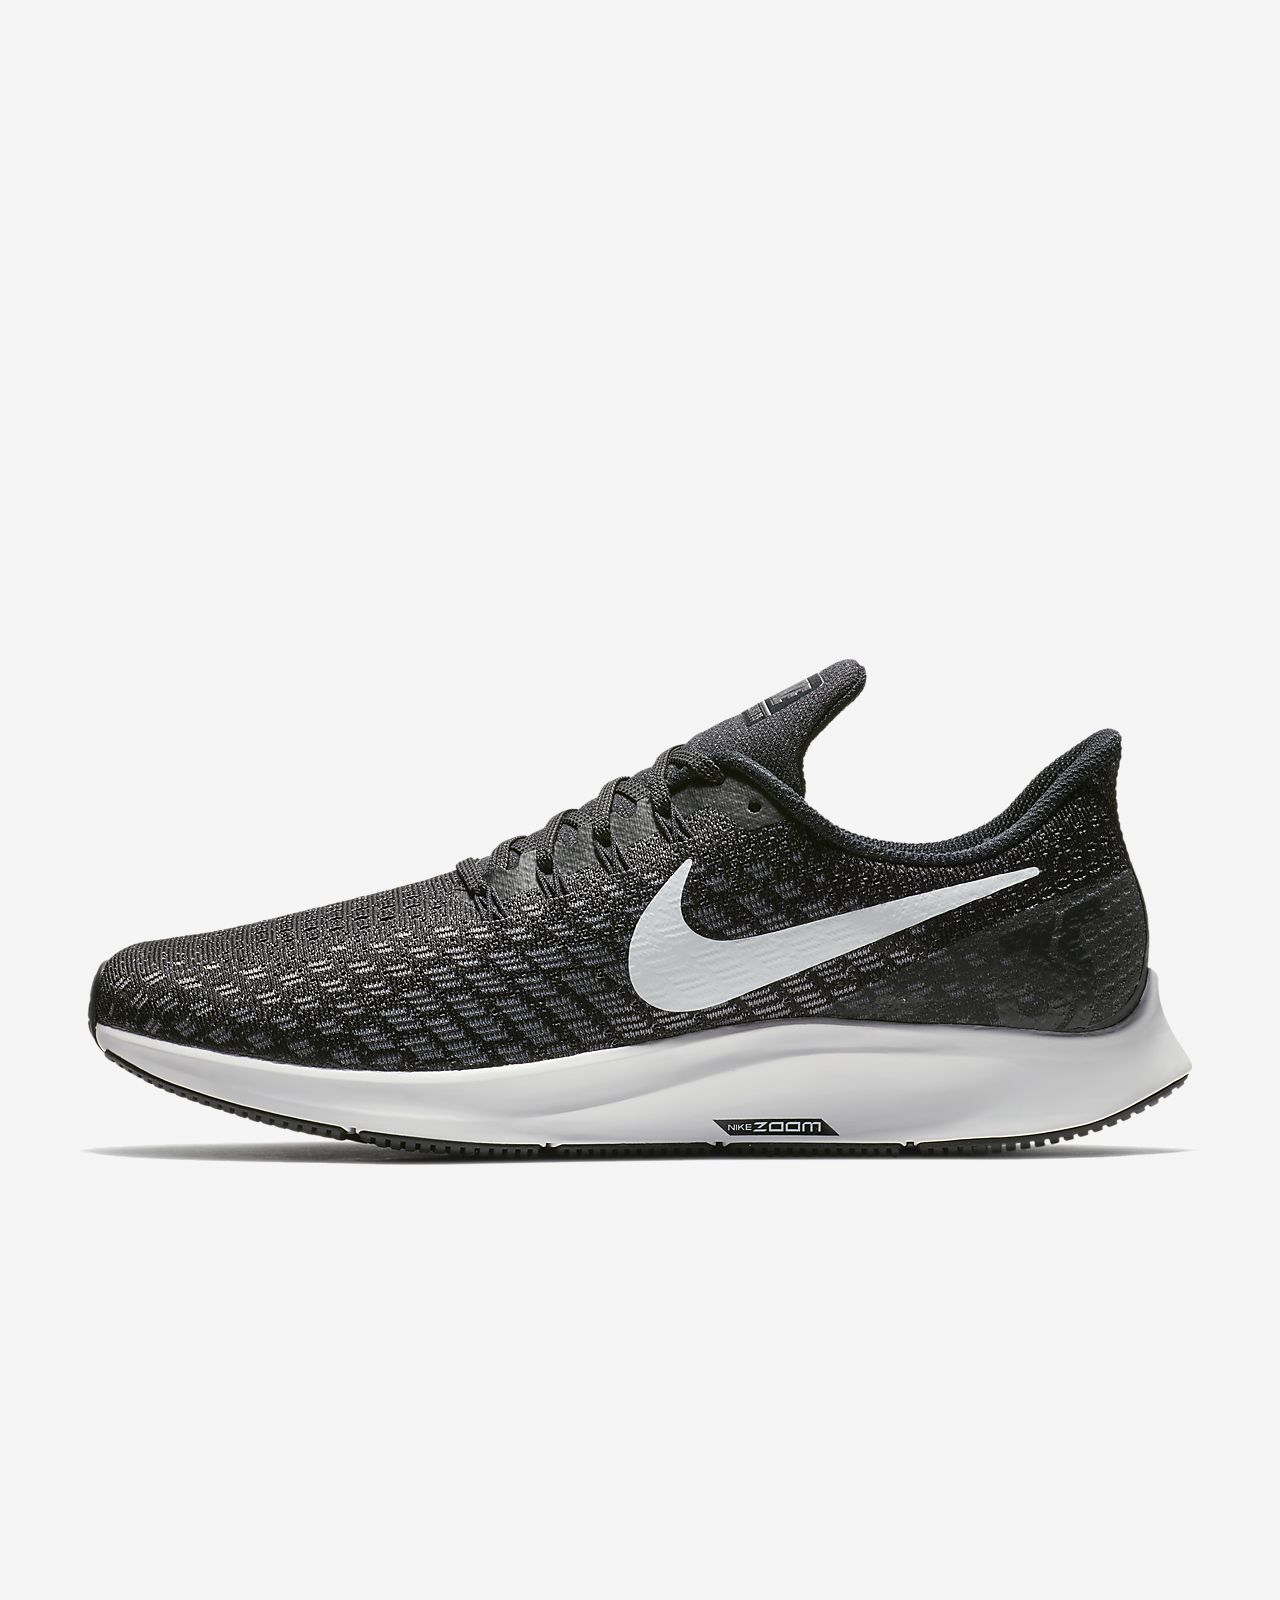 570c21d5d50b Nike Air Zoom Pegasus 35 Men s Running Shoe. Nike.com MY